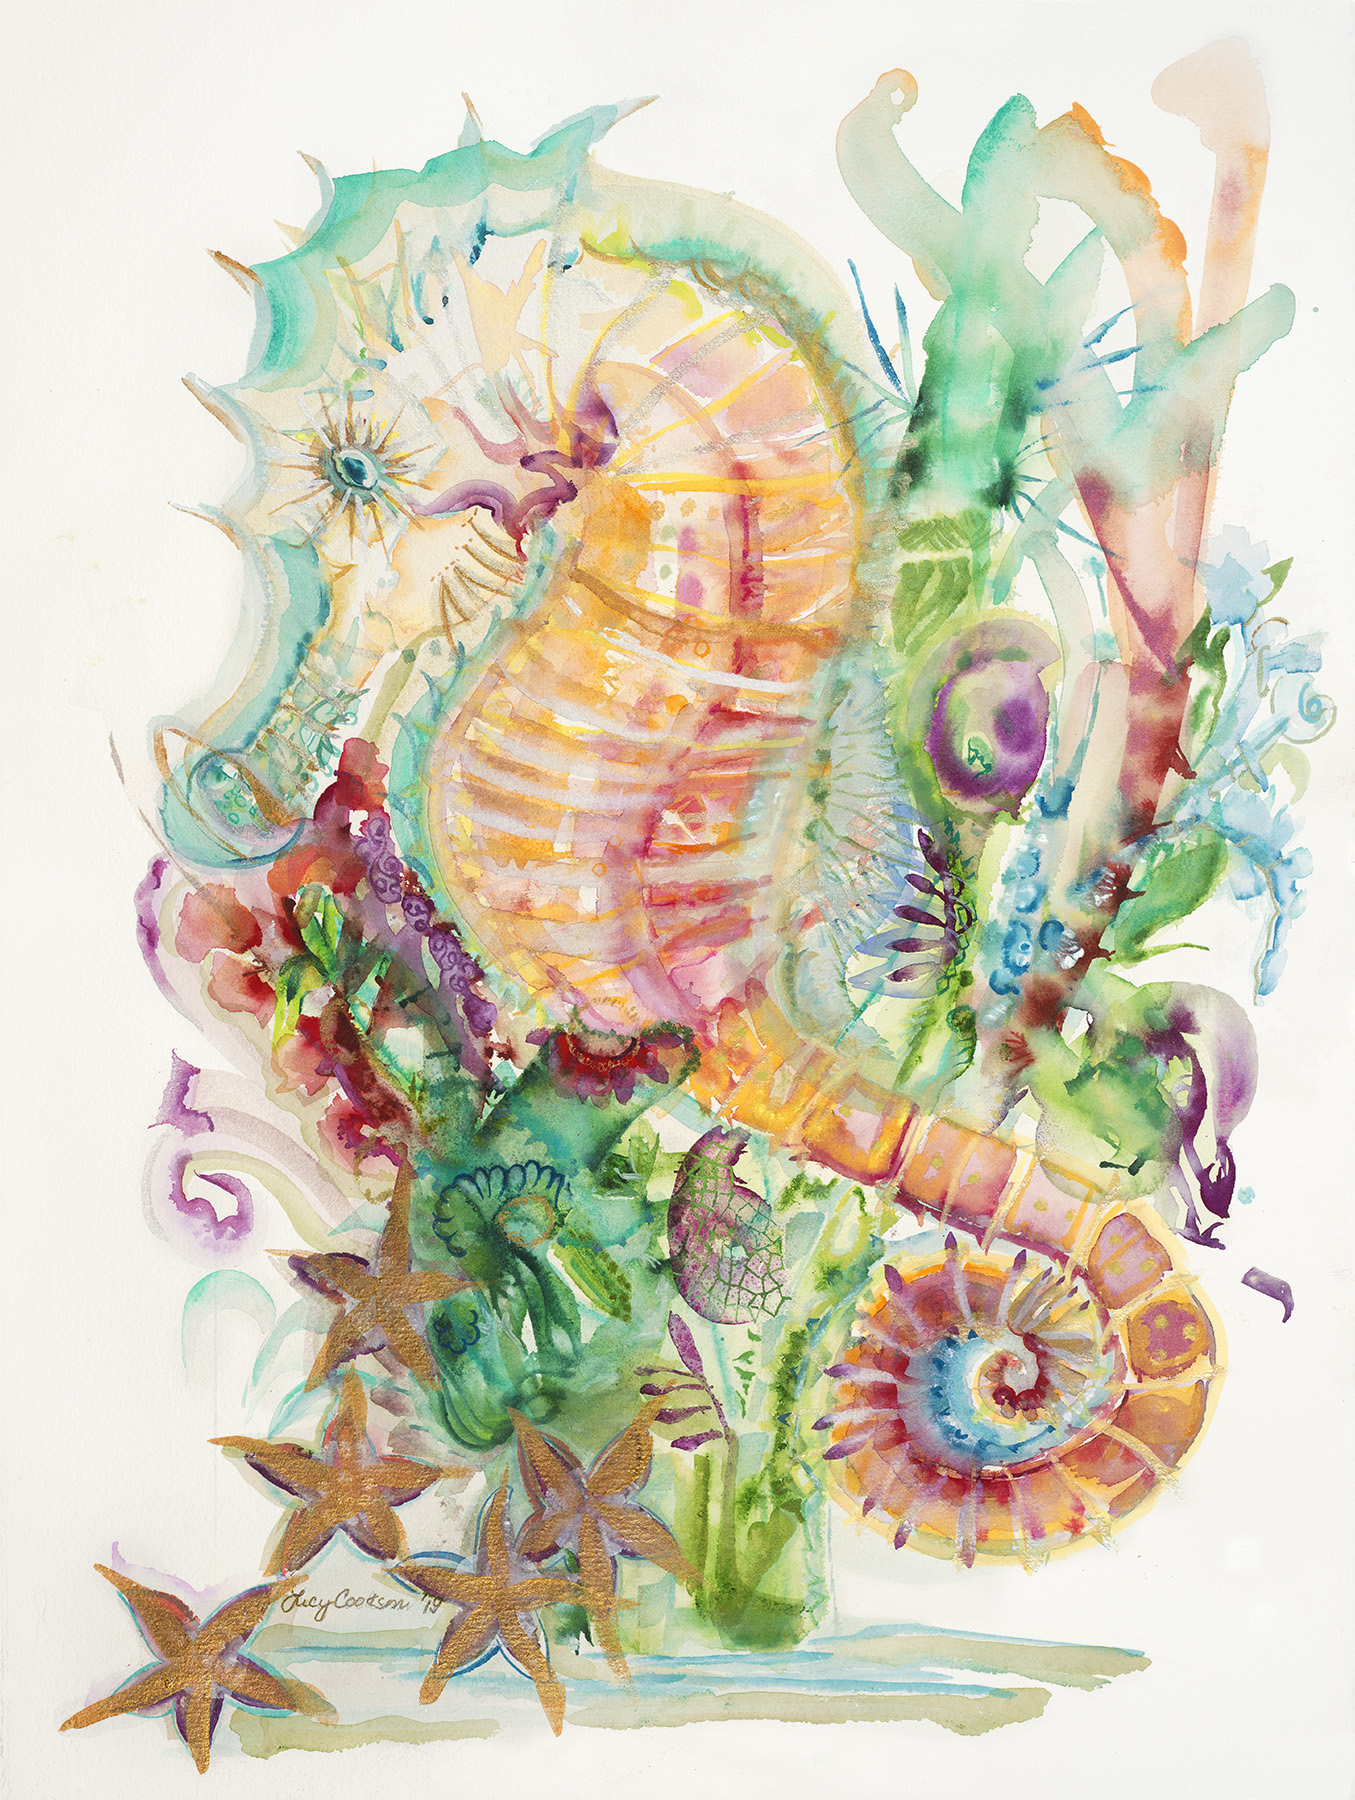 Seahorse, 2019, Watercolor on paper, 22 x 30 in.